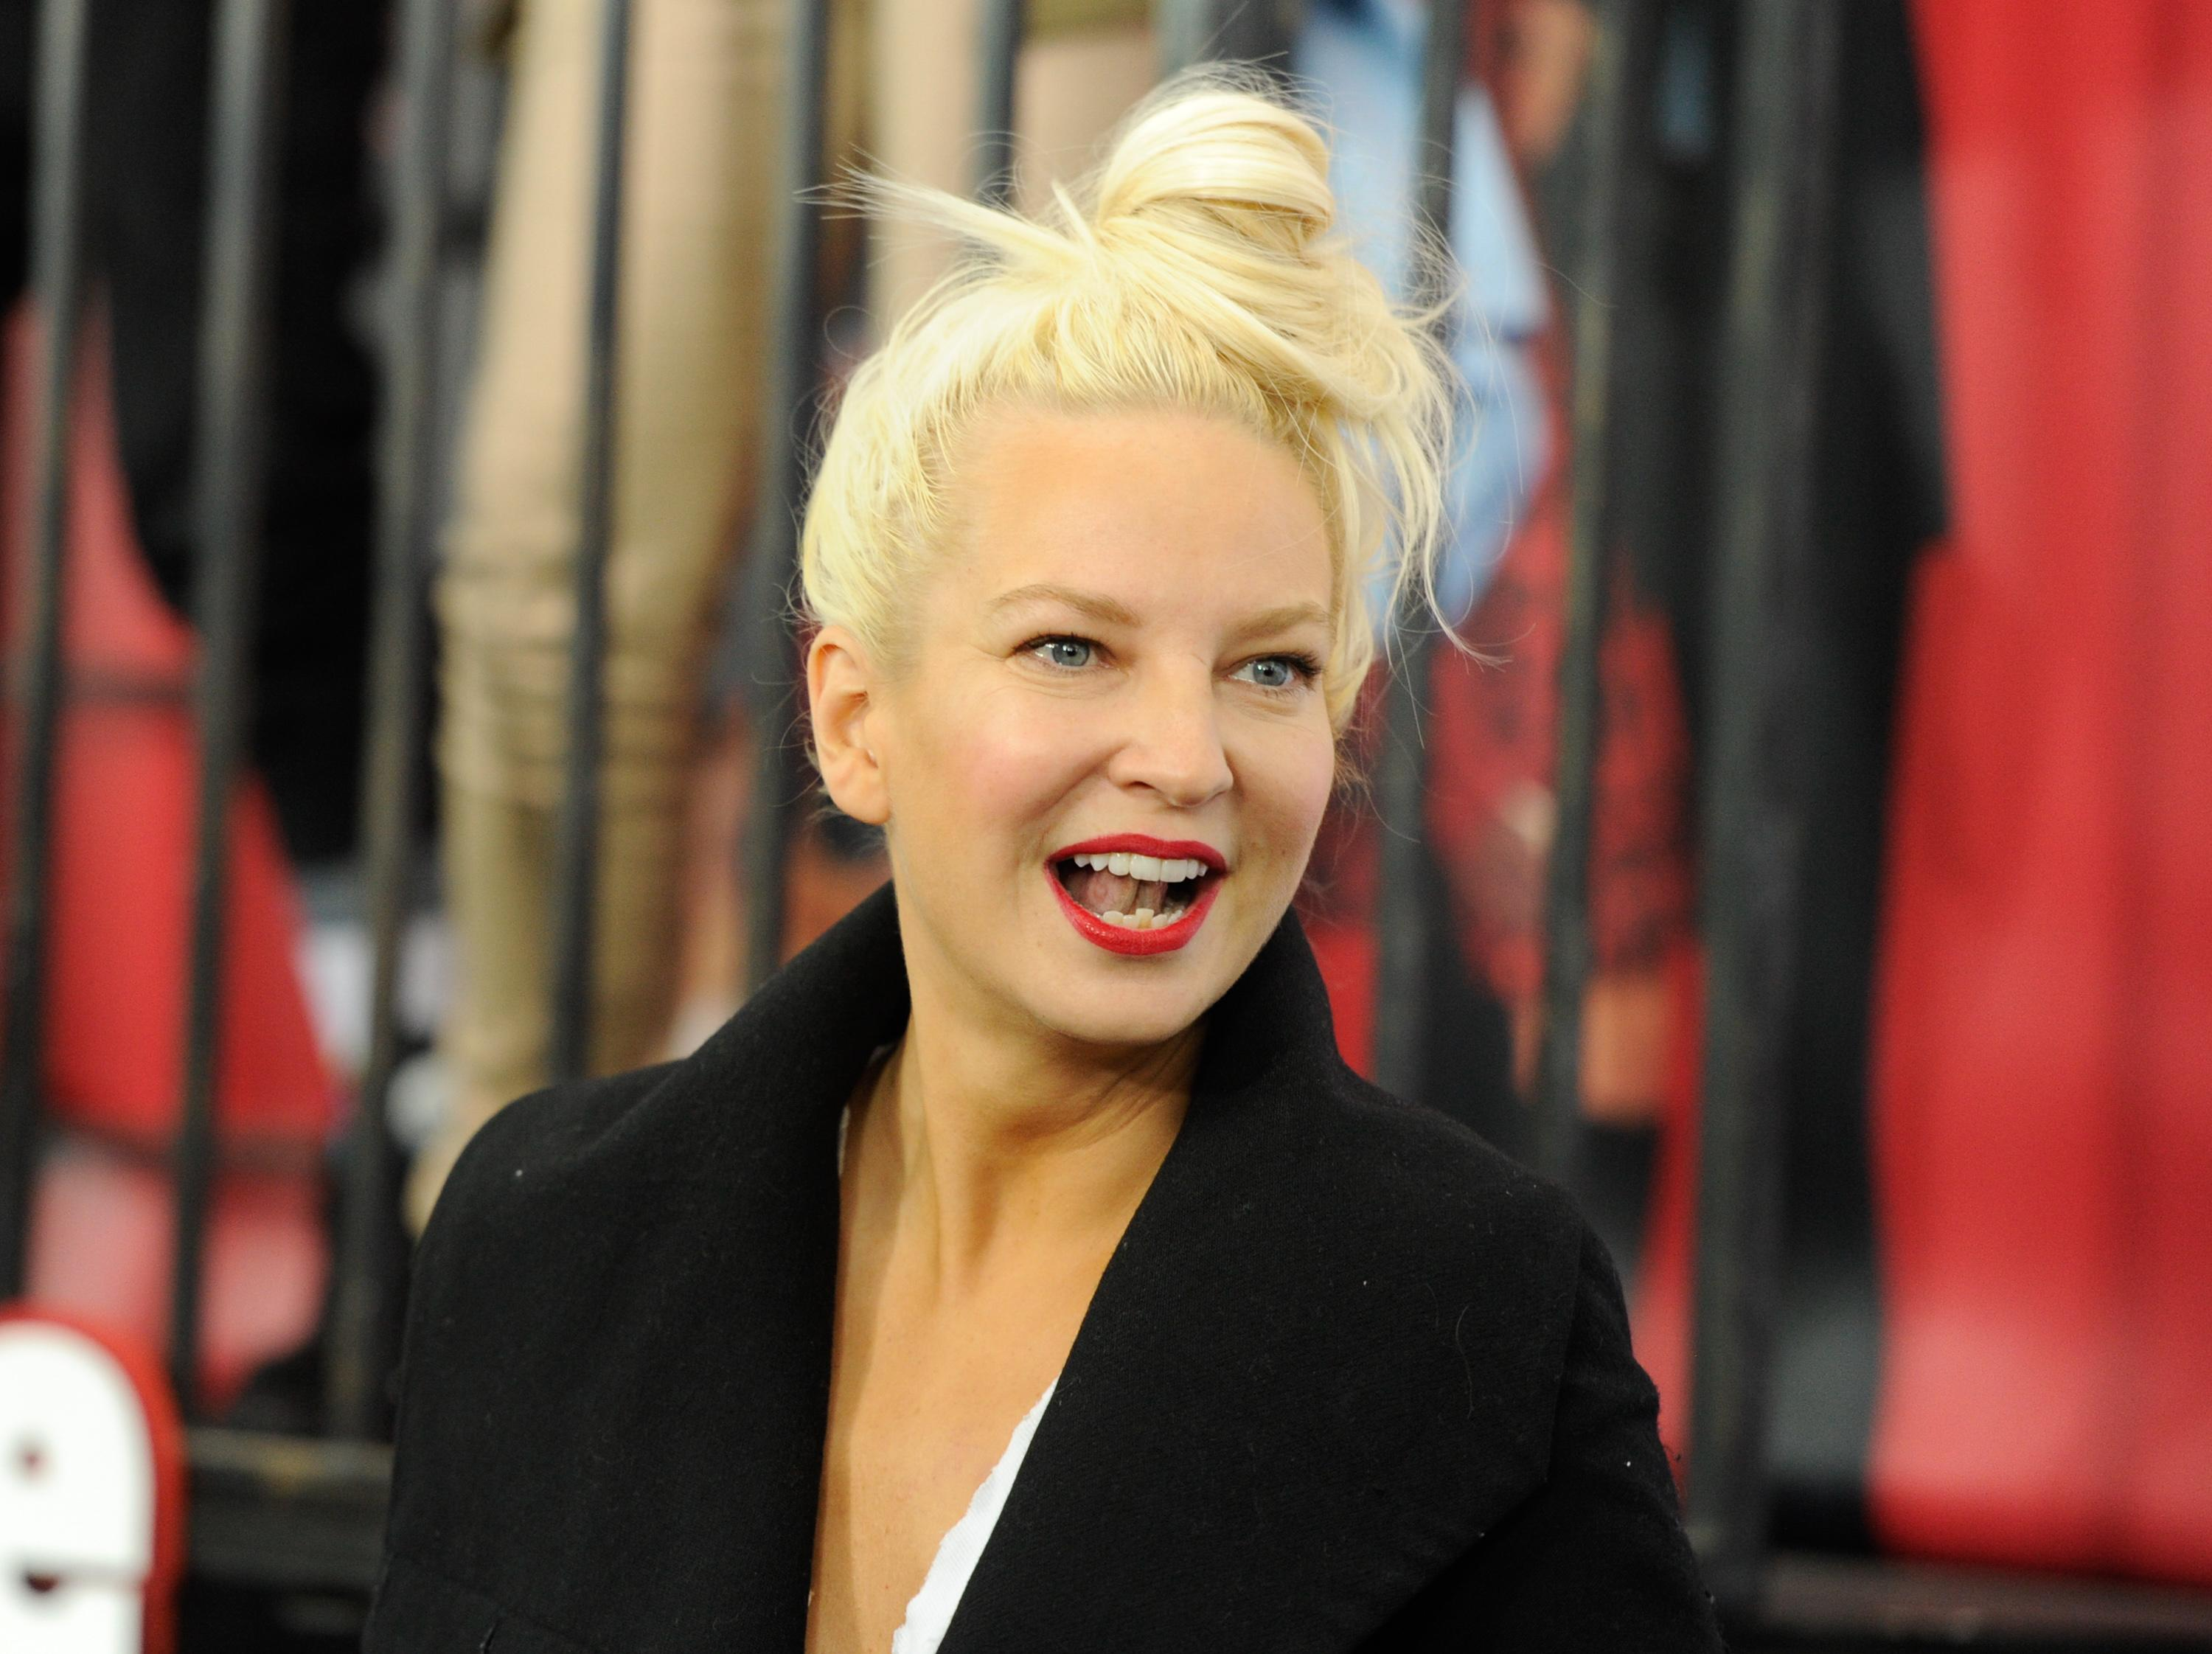 Diplo Son >> Pop Star Sia Has Adopted A Son And Wants No Strings Sexual Relationship With Diplo